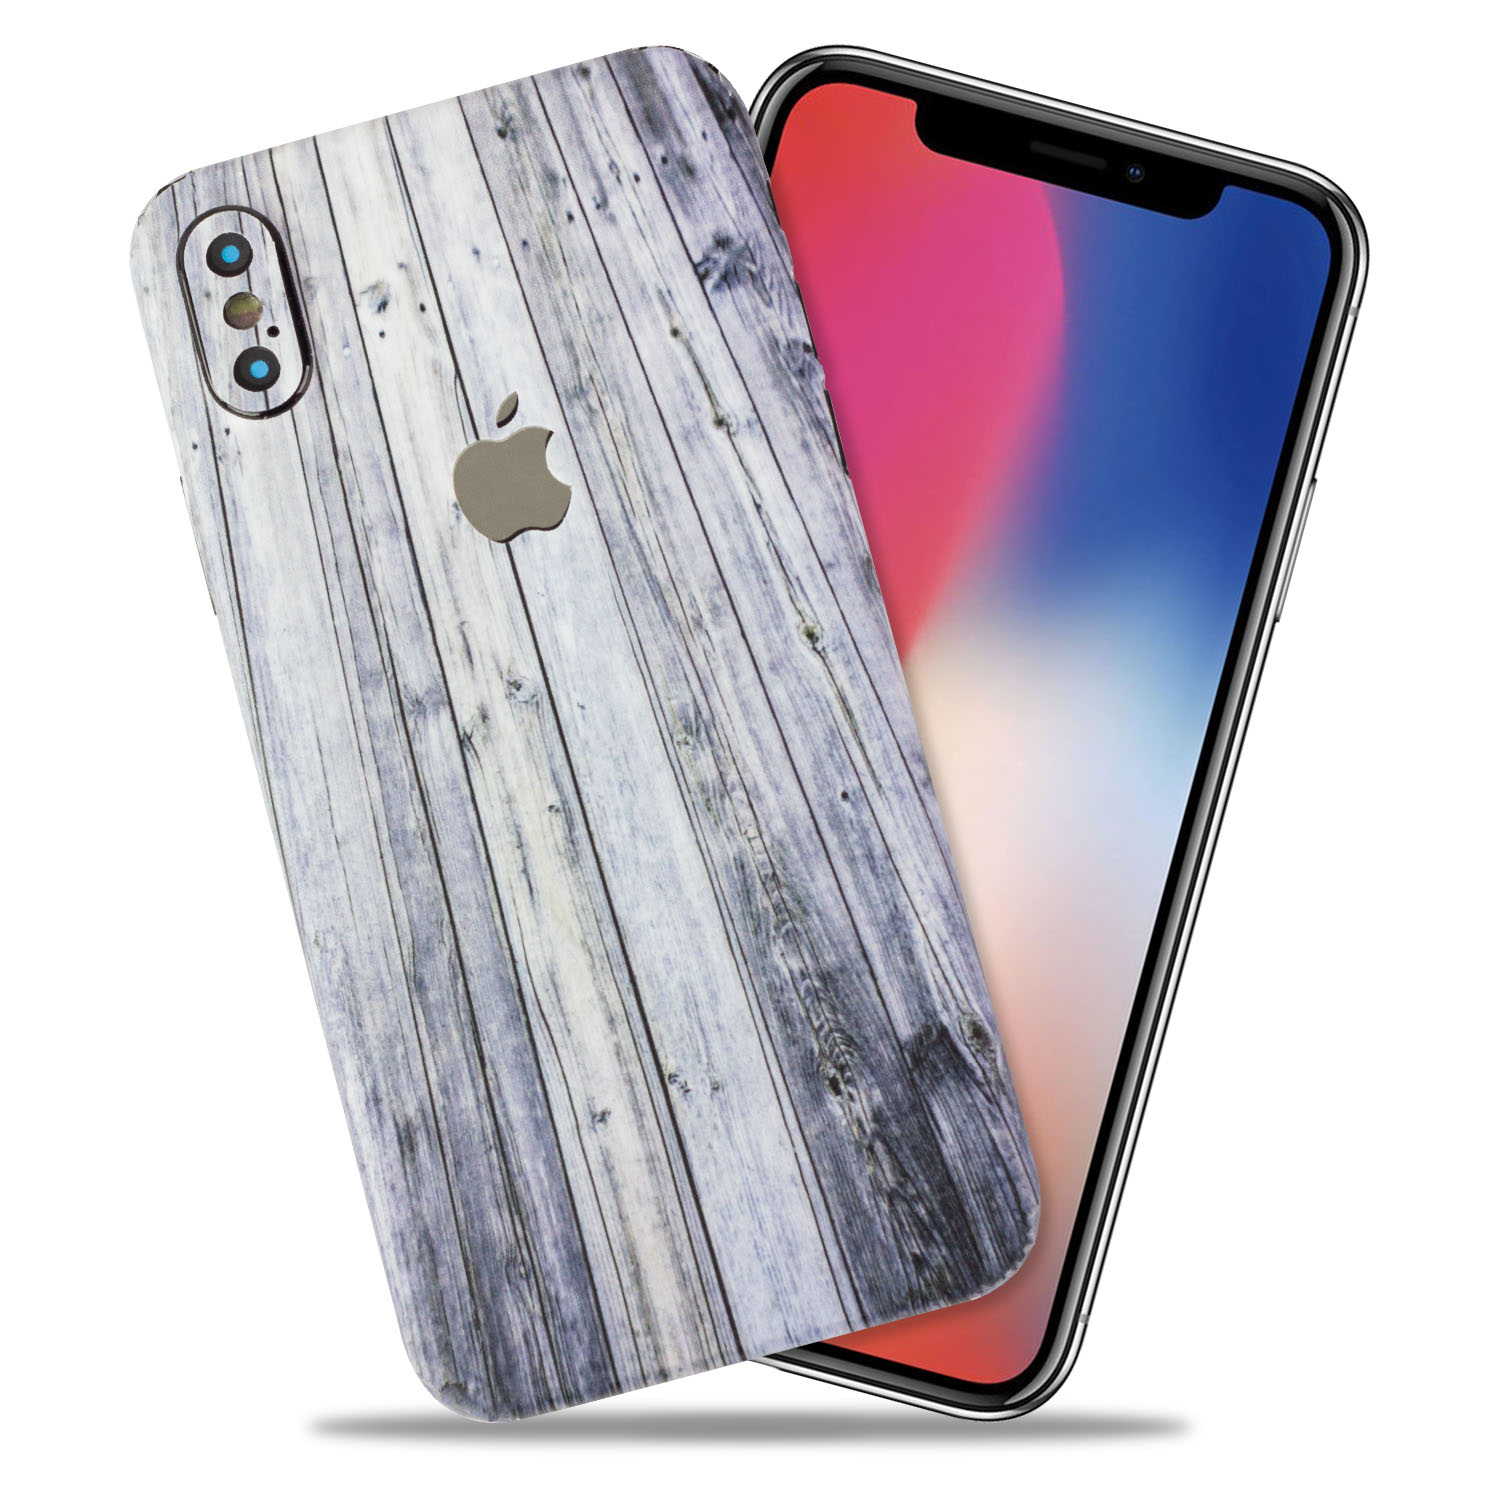 Aged Wood Texture Protective Skin Decal for Apple iPhone X Vinyl Wrap Cover [Back 1-PK & Camera 4-PK] by GolemGuard